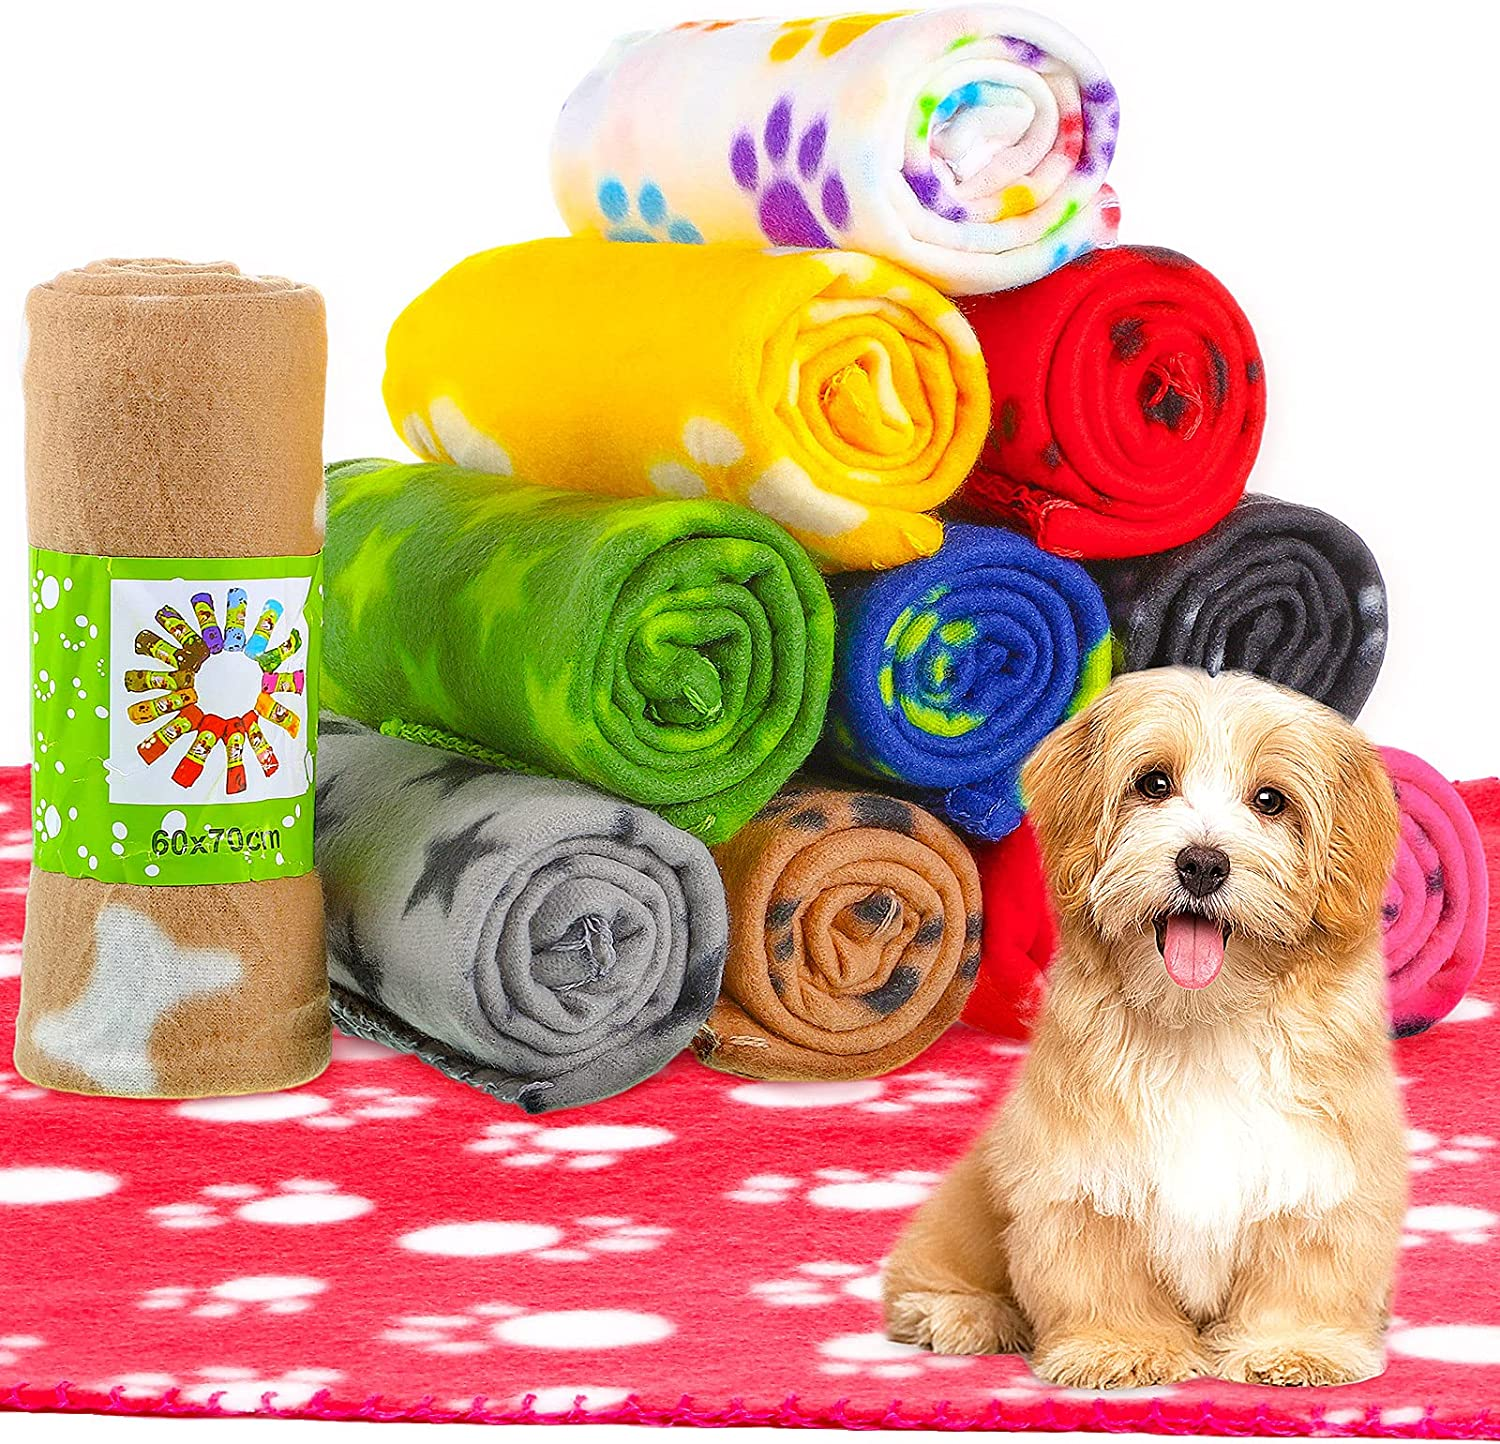 12 Pieces Dog Blanket Fleece Fabric Puppy Direct stock discount Cheap super special price Paw with Print